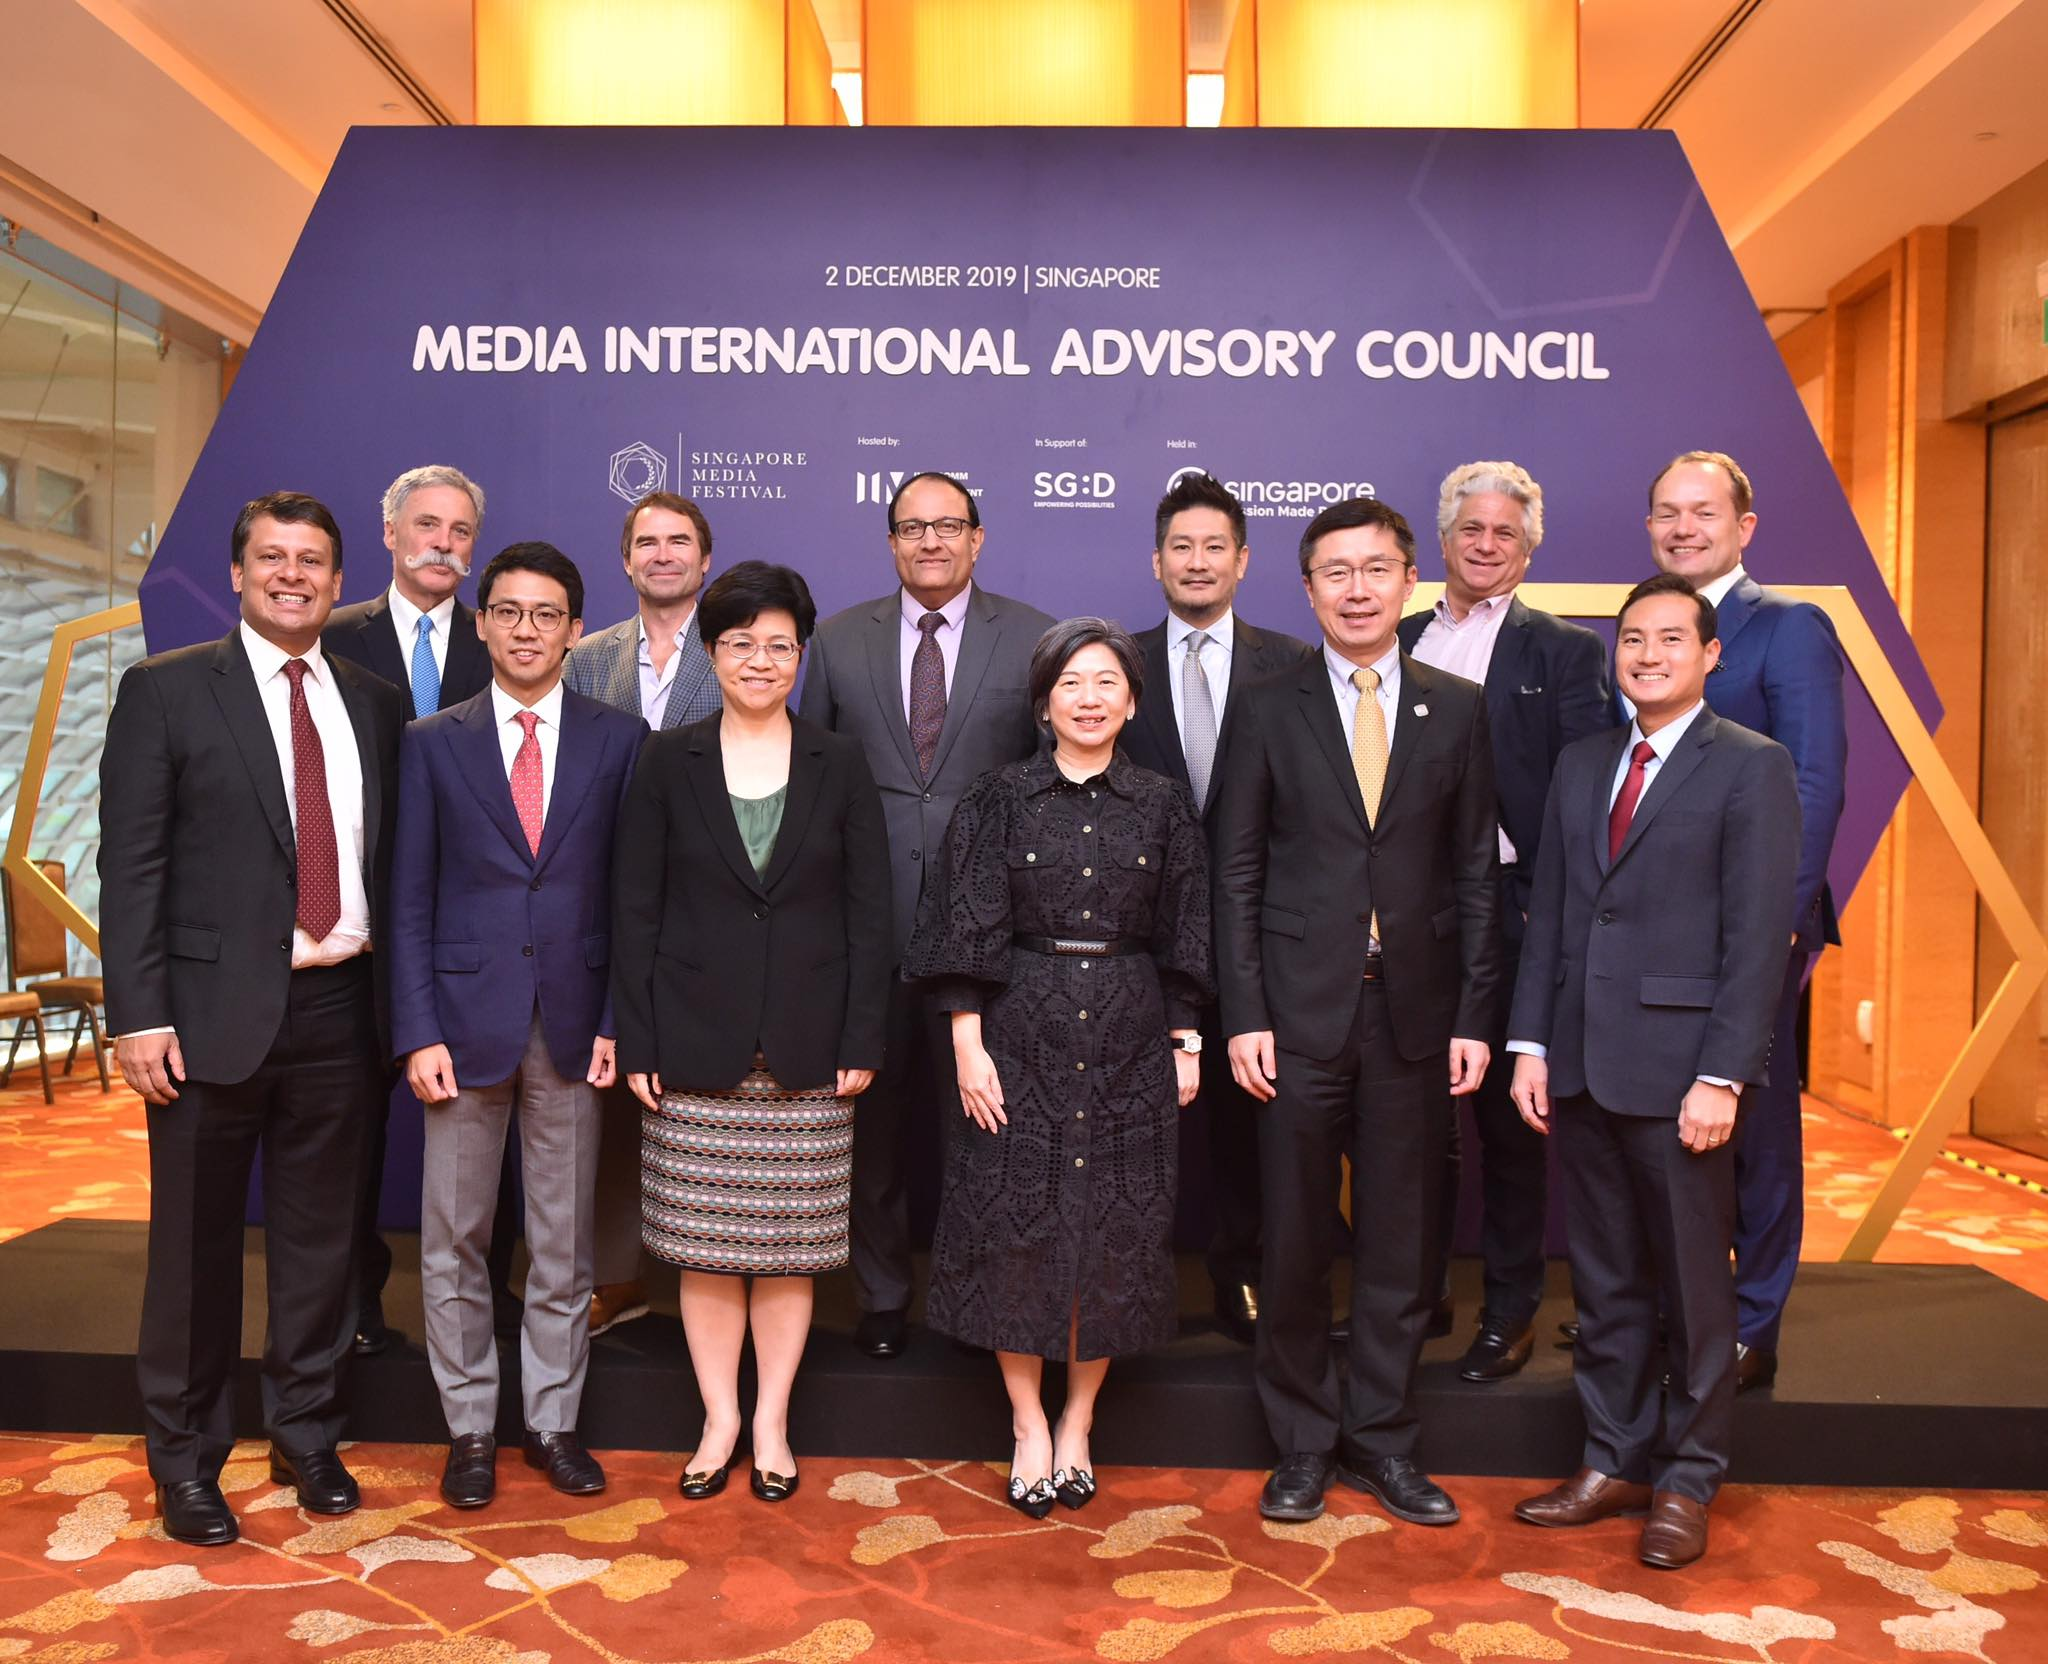 The launch of Media International Advisory Council (IAC), chaired by Minister S Iswaran, in 2019. Photo courtesy: SMF